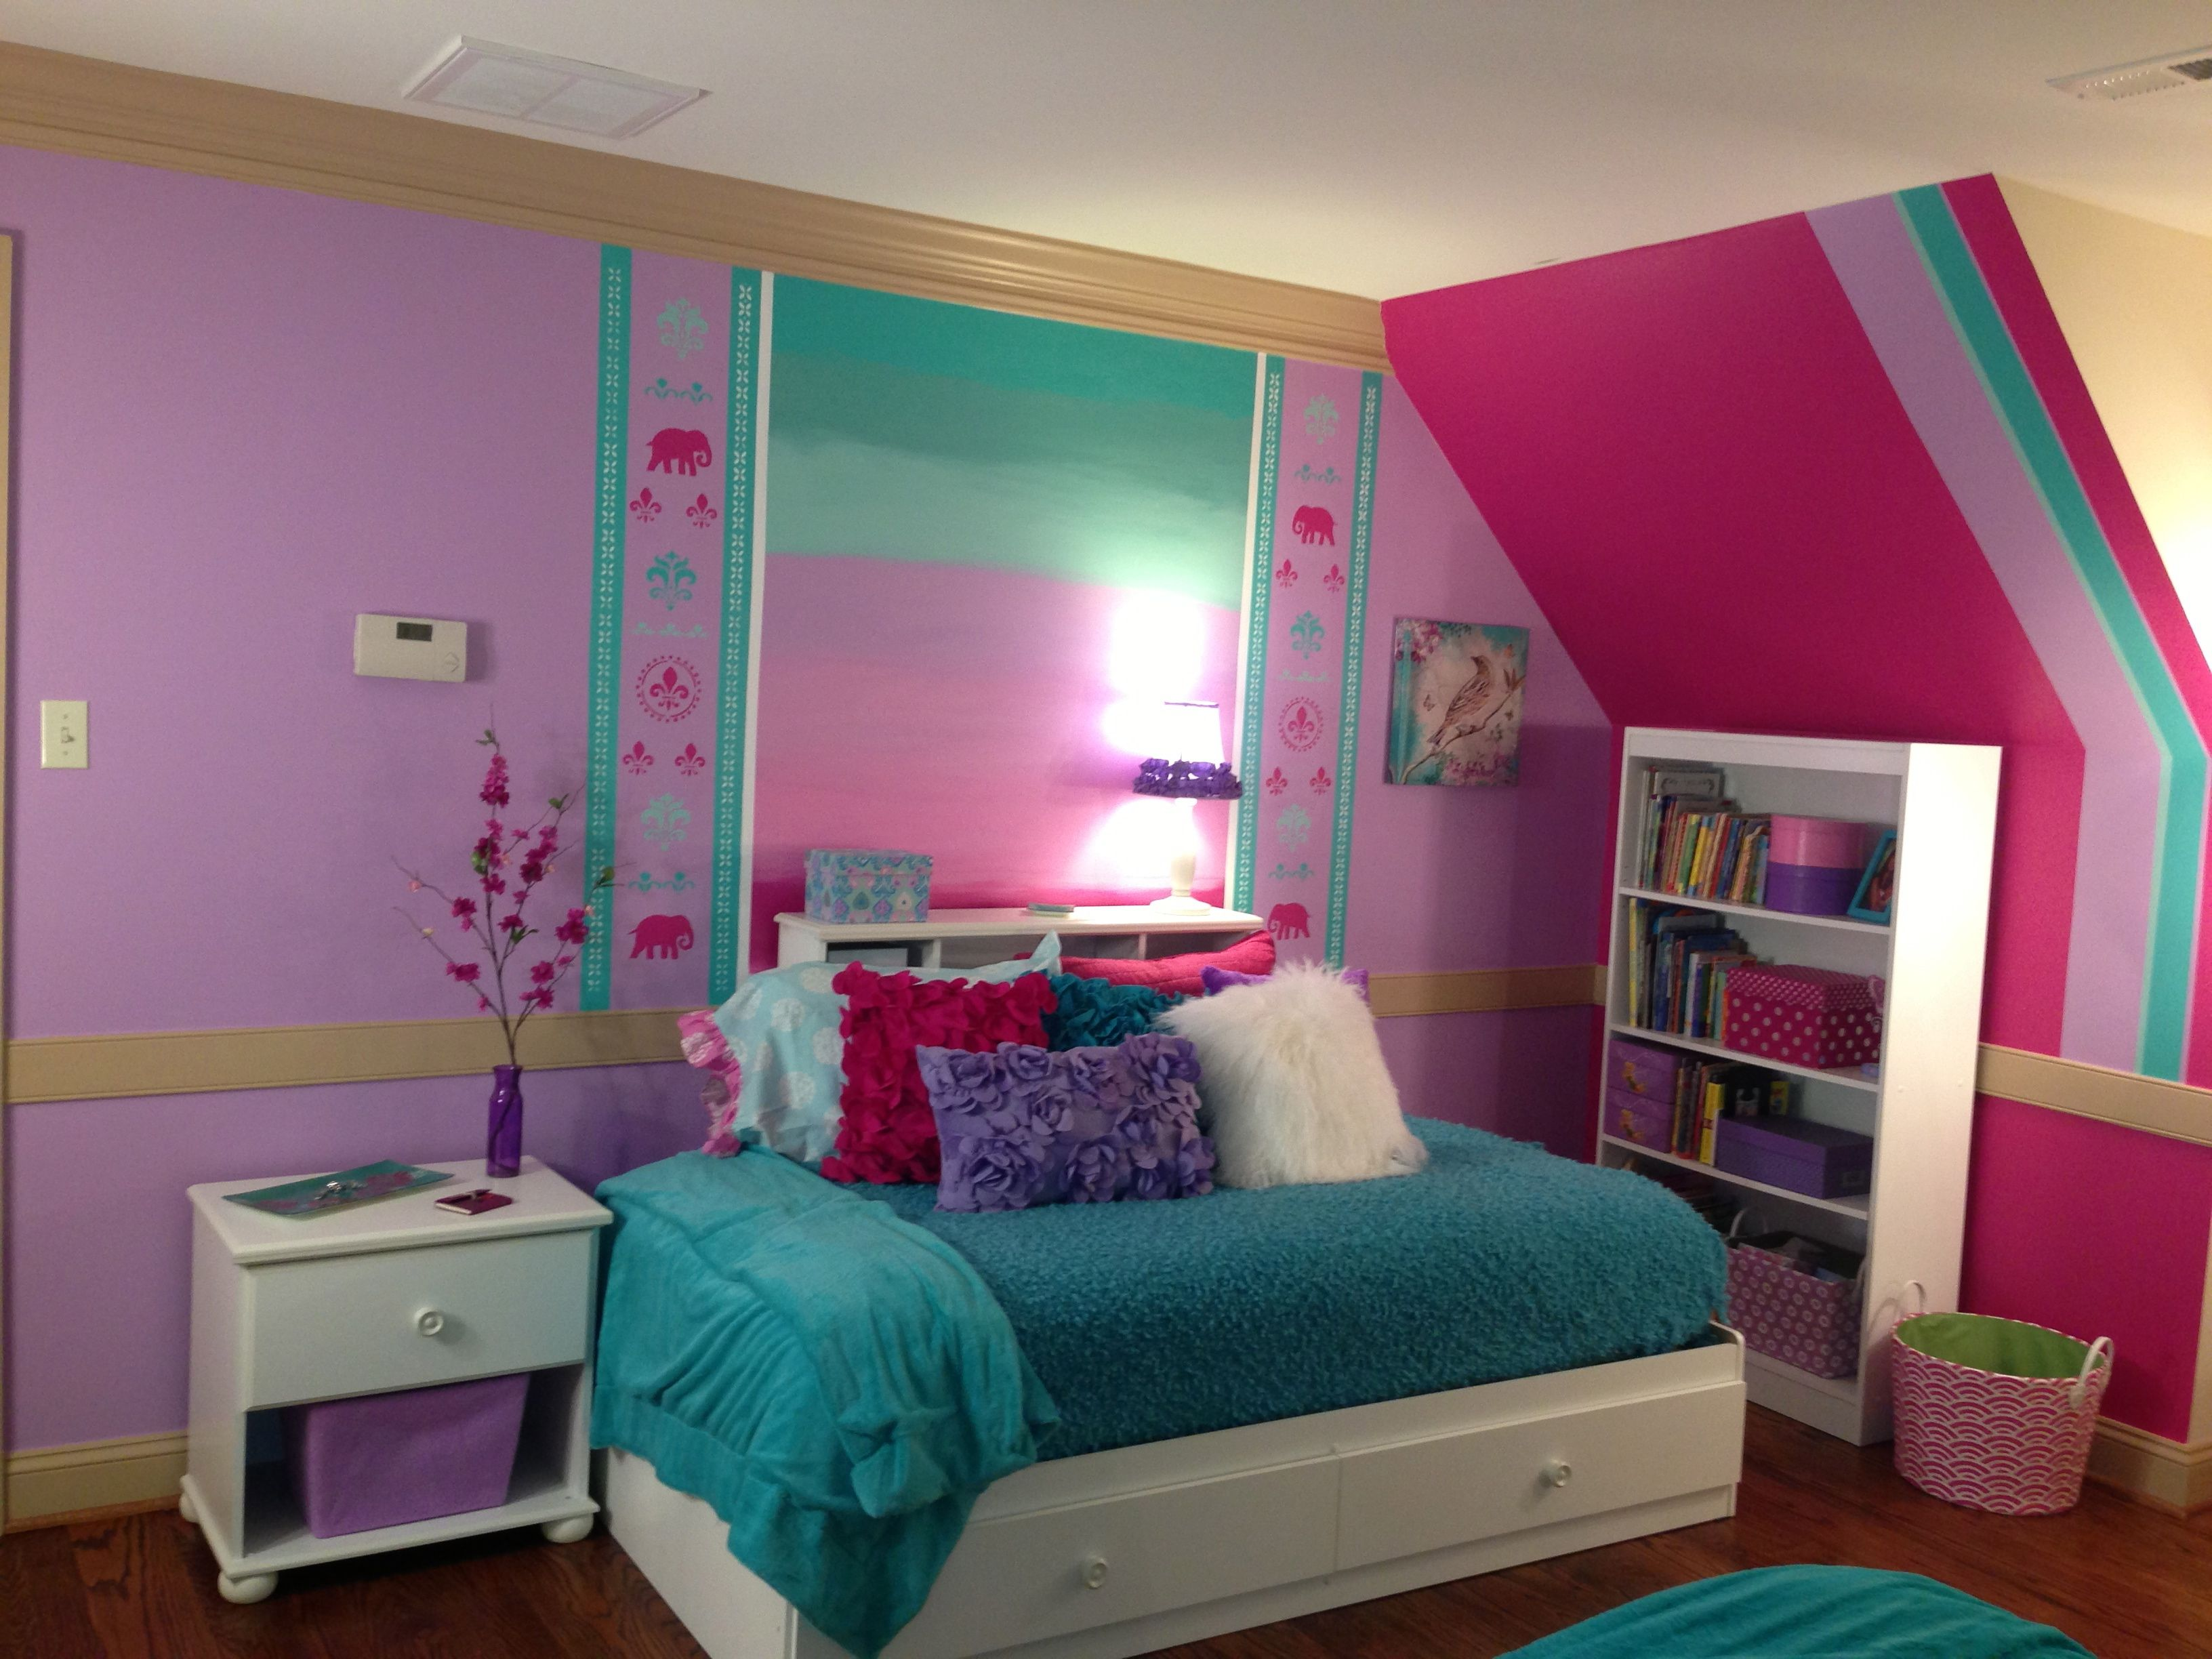 Making the most of space with a twin bed 7 year old for 7 year old bedroom ideas